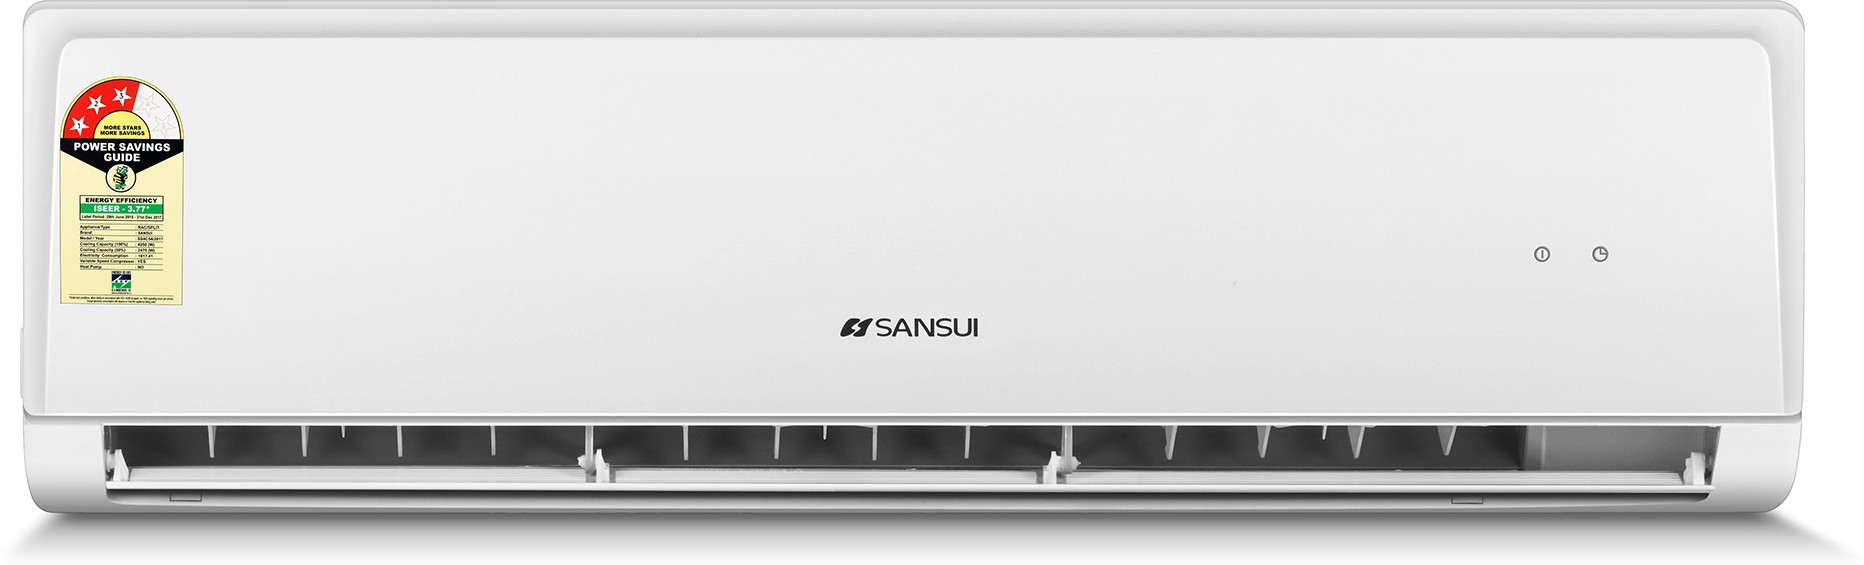 Sansui SS4C54.WS1-CM 1.5 Ton 3 Star BEE Rating 2017 Inverter AC Image